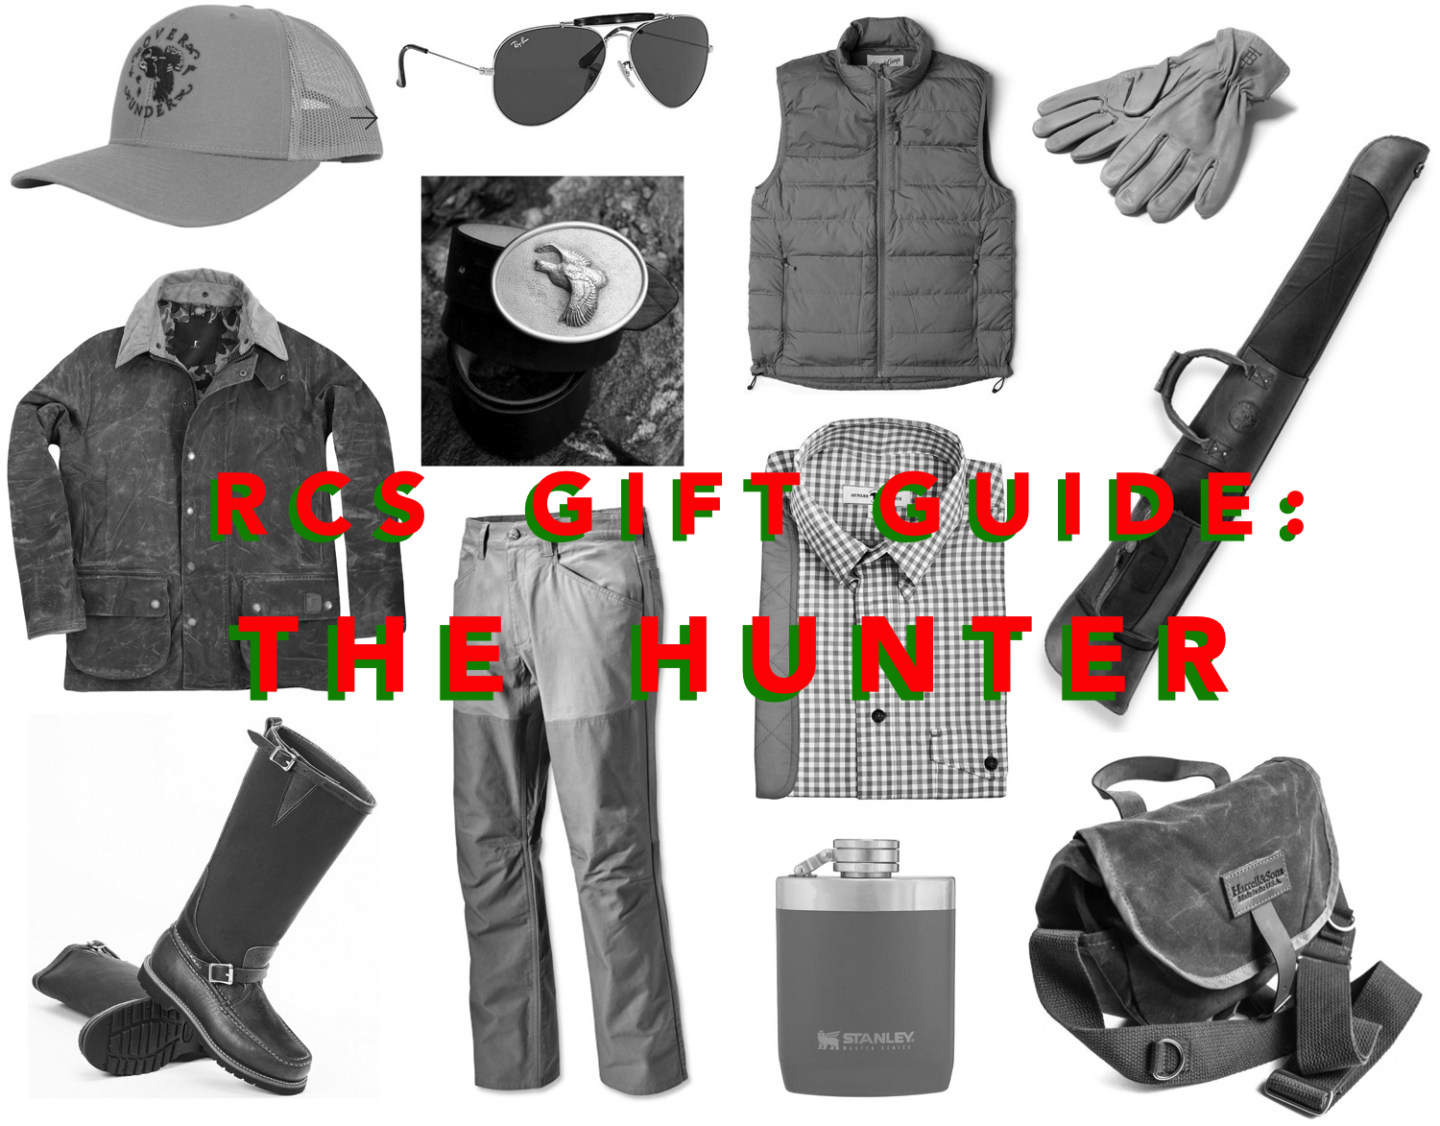 RCS Gift Guide #1: The Hunter